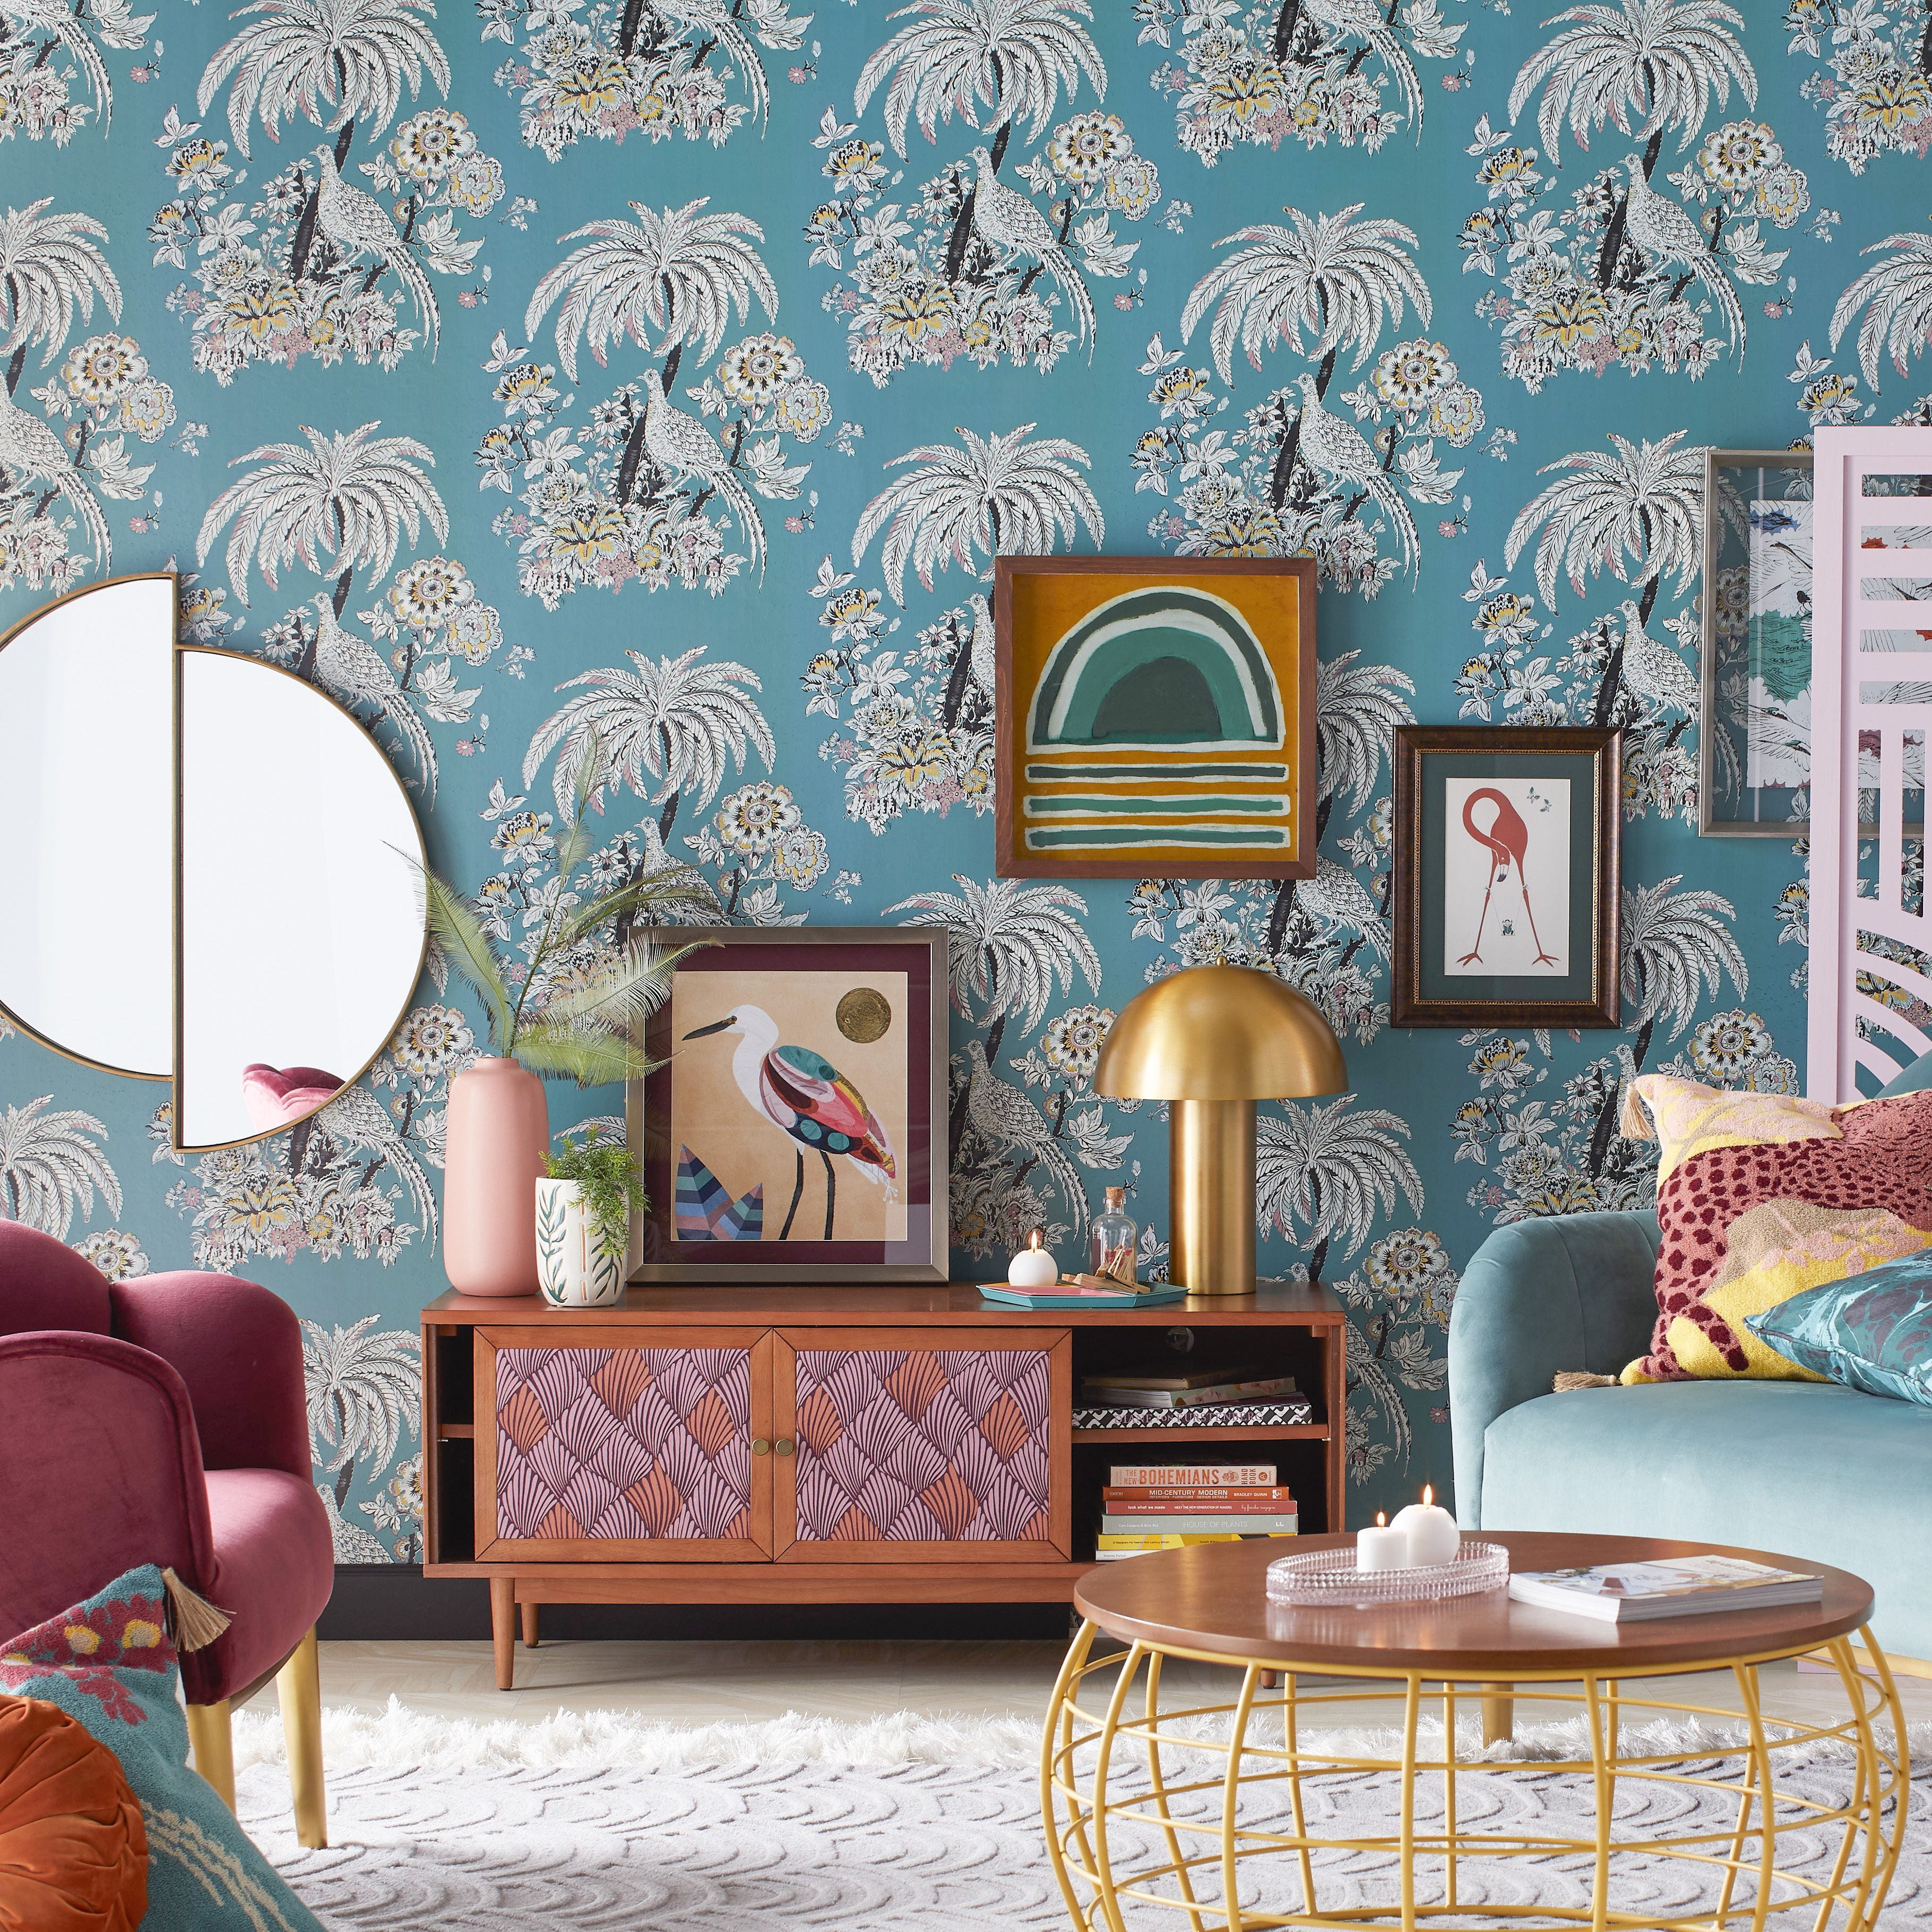 Tropical Toile Peel And Stick Wallpaper By Drew Barrymore Flower Home Teal Walmart Com Home Affordable Wallpaper Decor